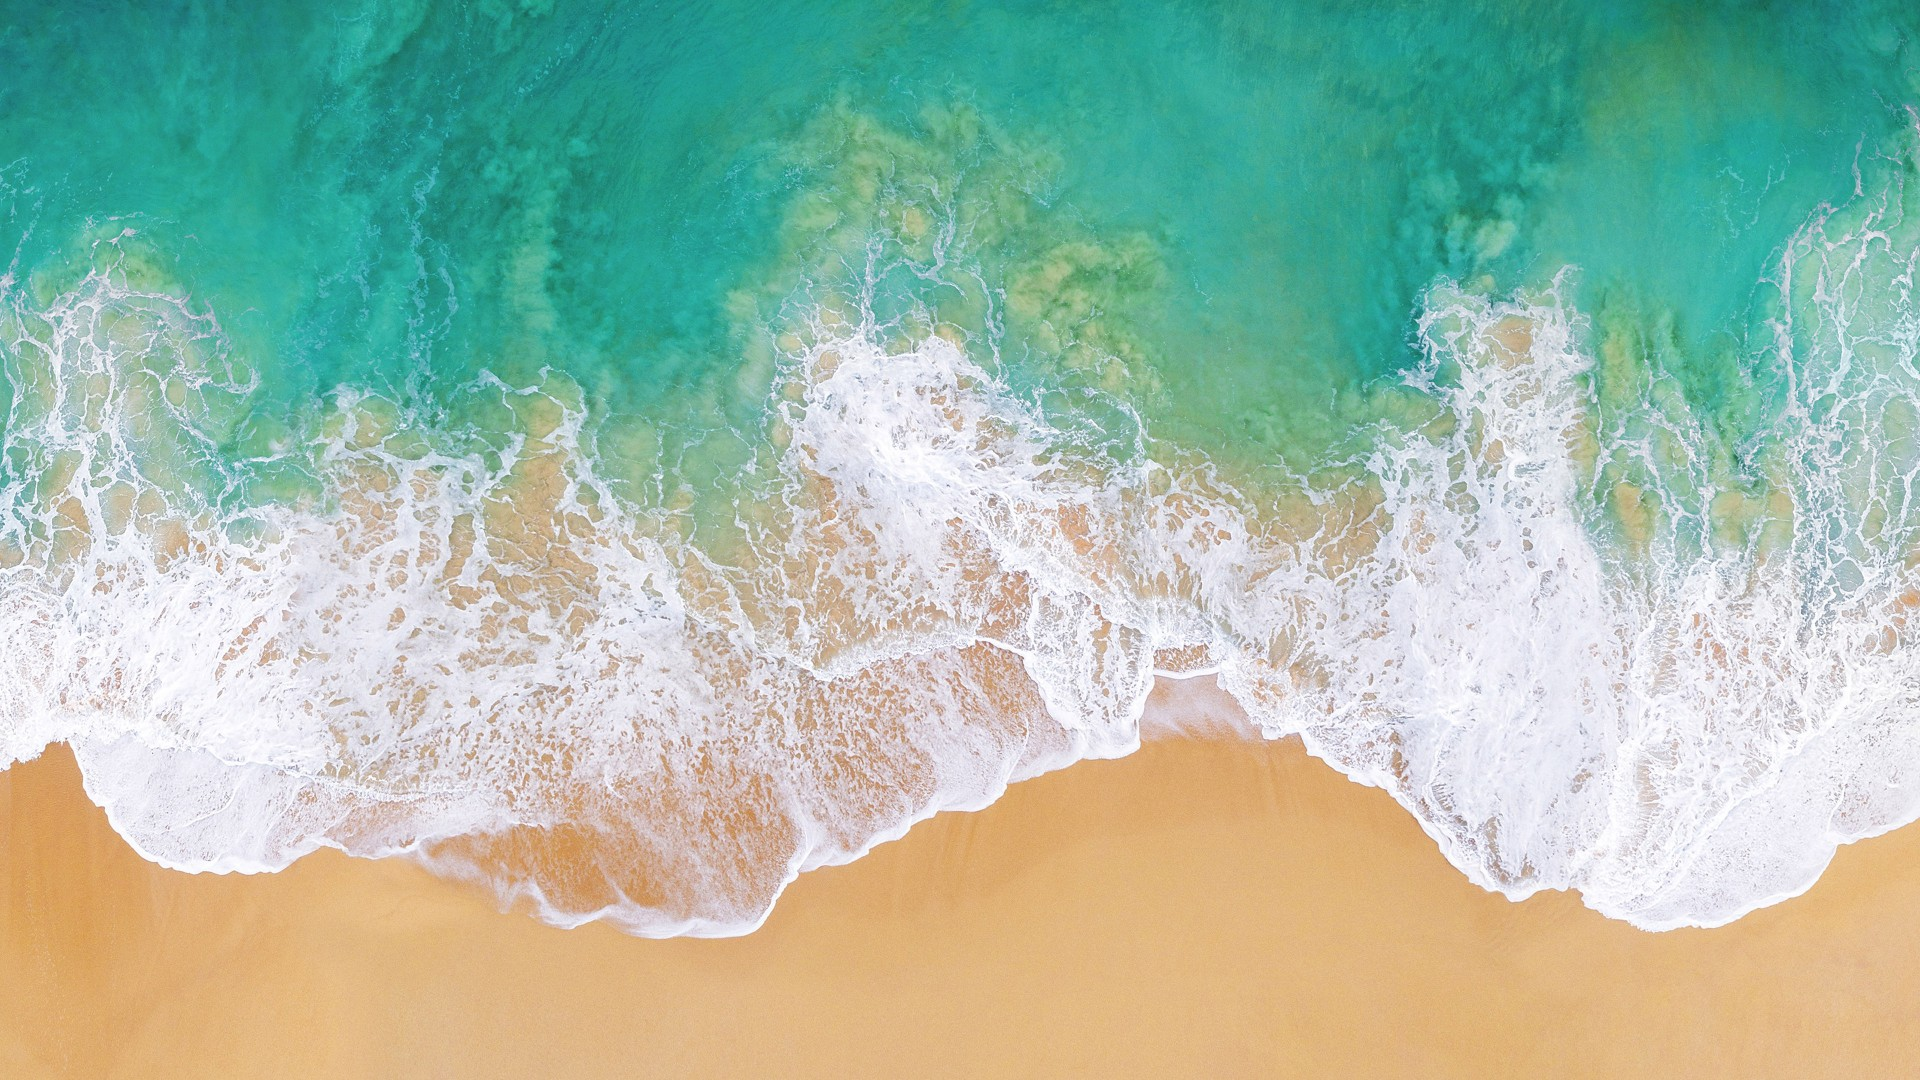 Wallpaper IOS 11, 4k, 5k, Beach, Ocean, OS #13655